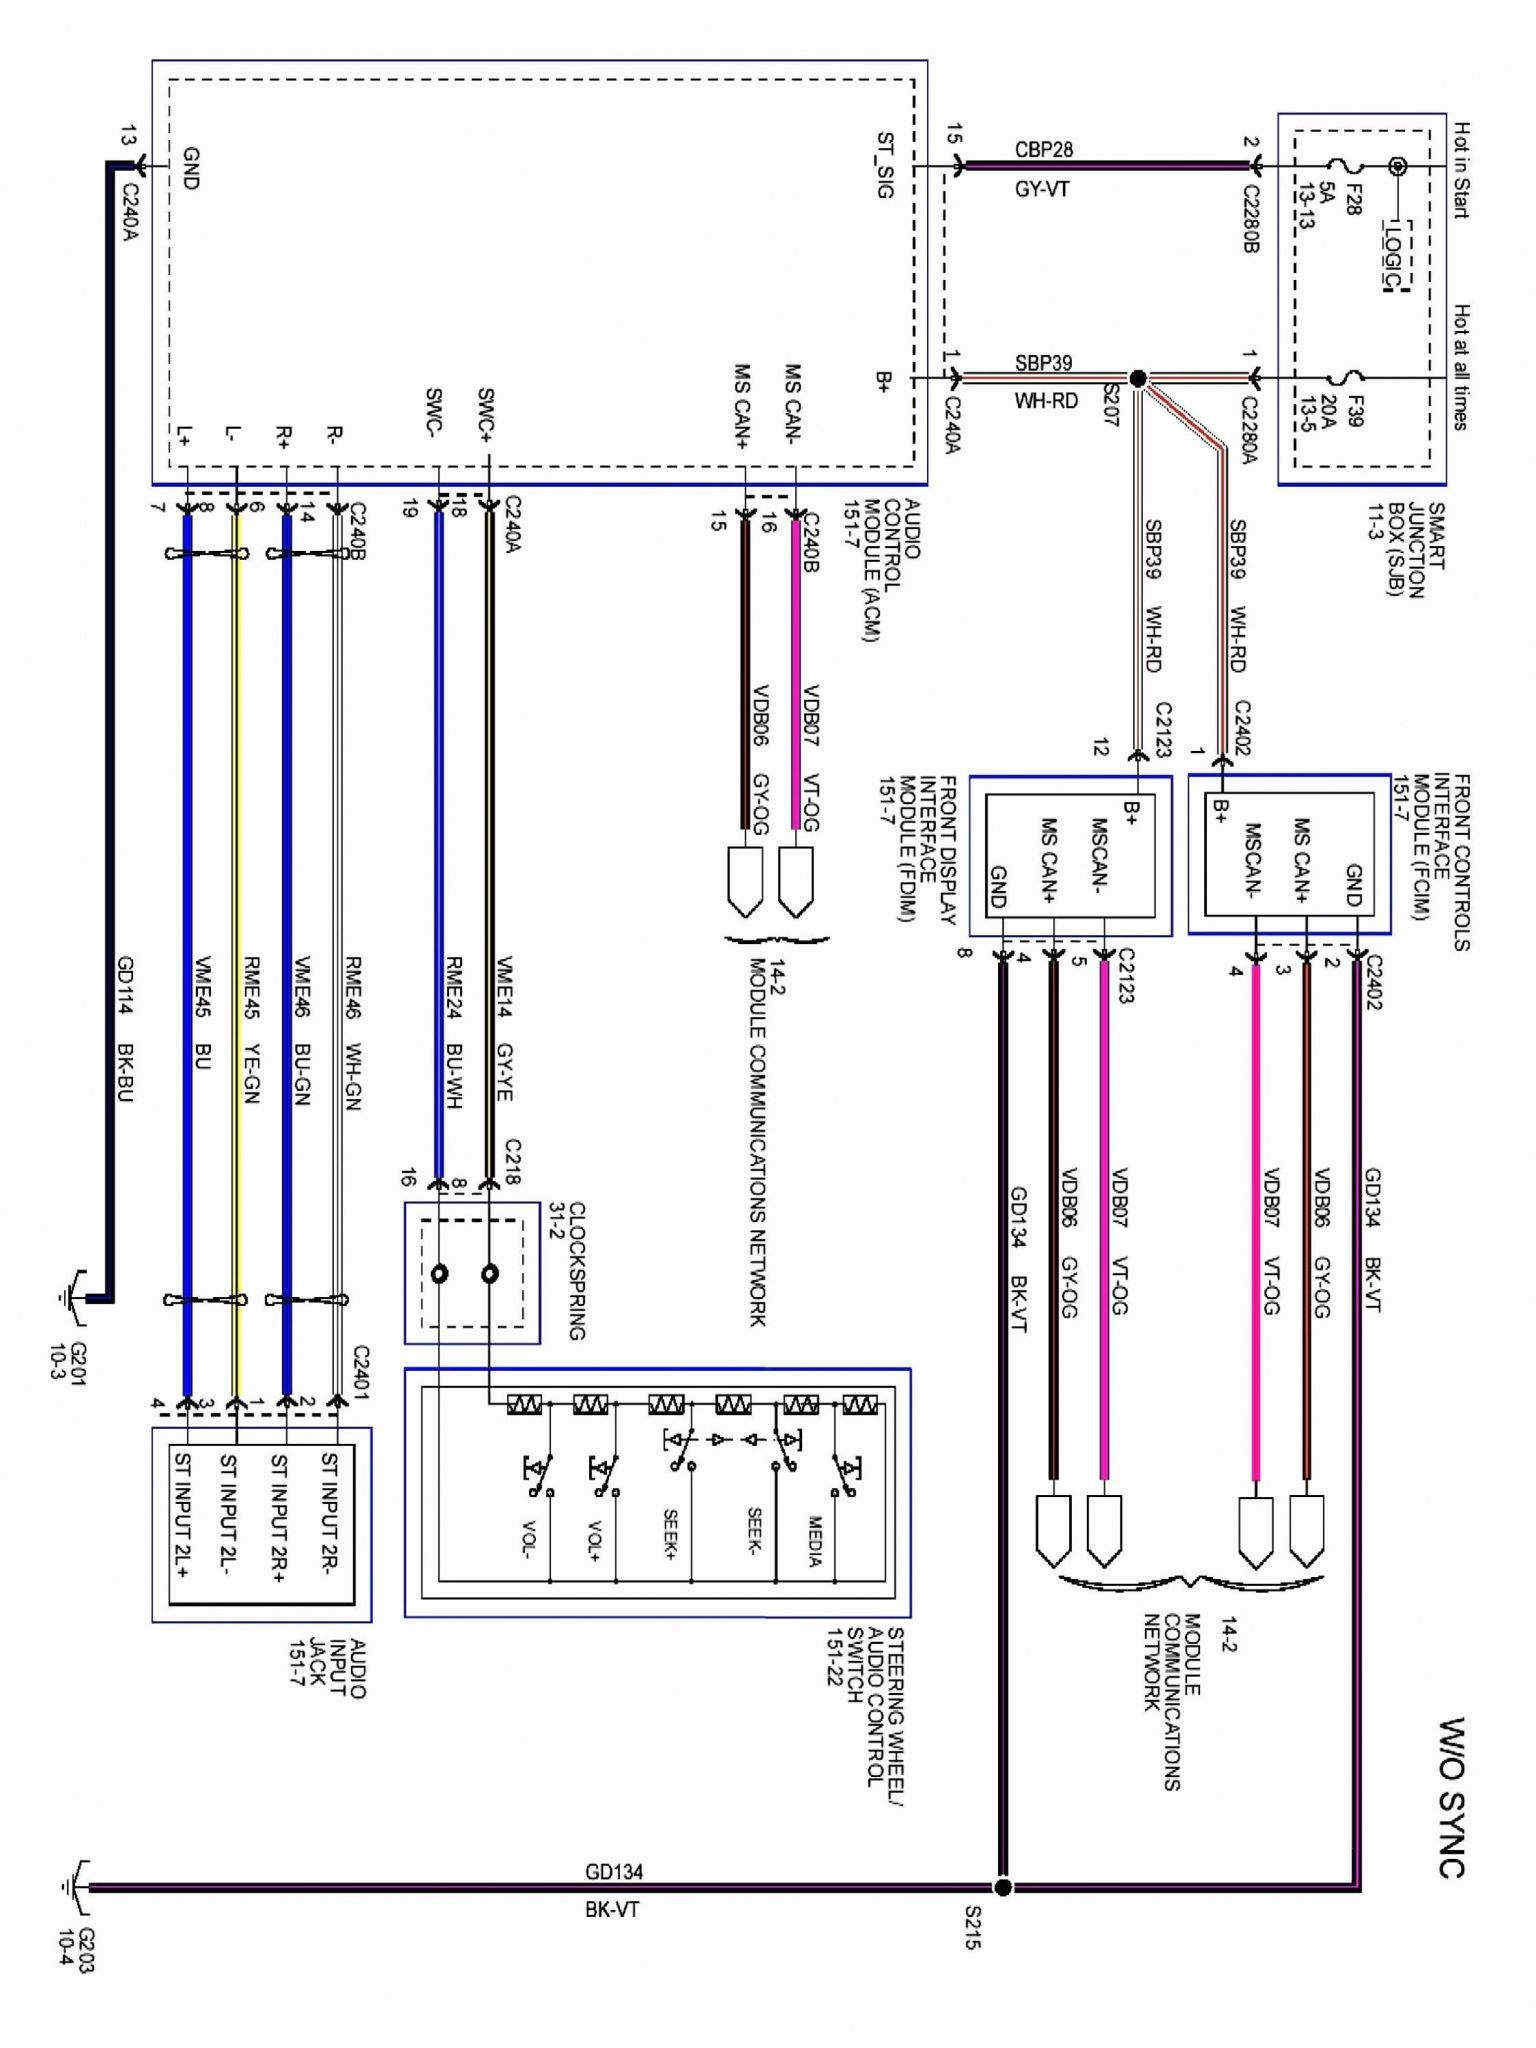 Toshiba Car Stereo Wiring Diagram Wiring Diagram For Psc Motor For Wiring Diagram Schematics